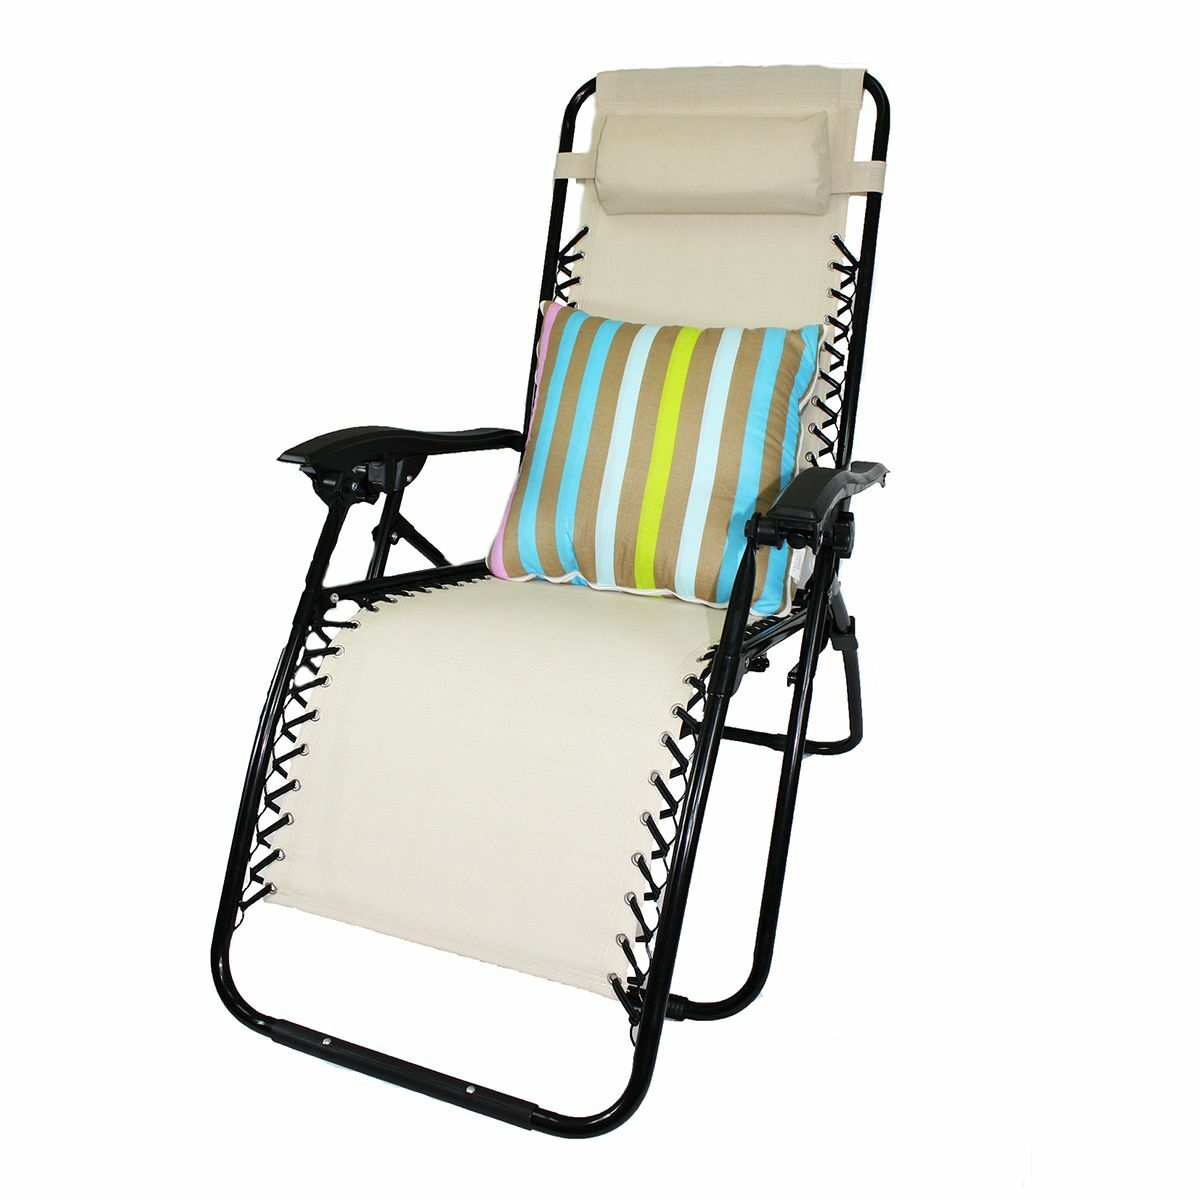 Combo Chair Ii: Lounge Chair Recliner Patio Oudoor Chair+2in1 Pillow And